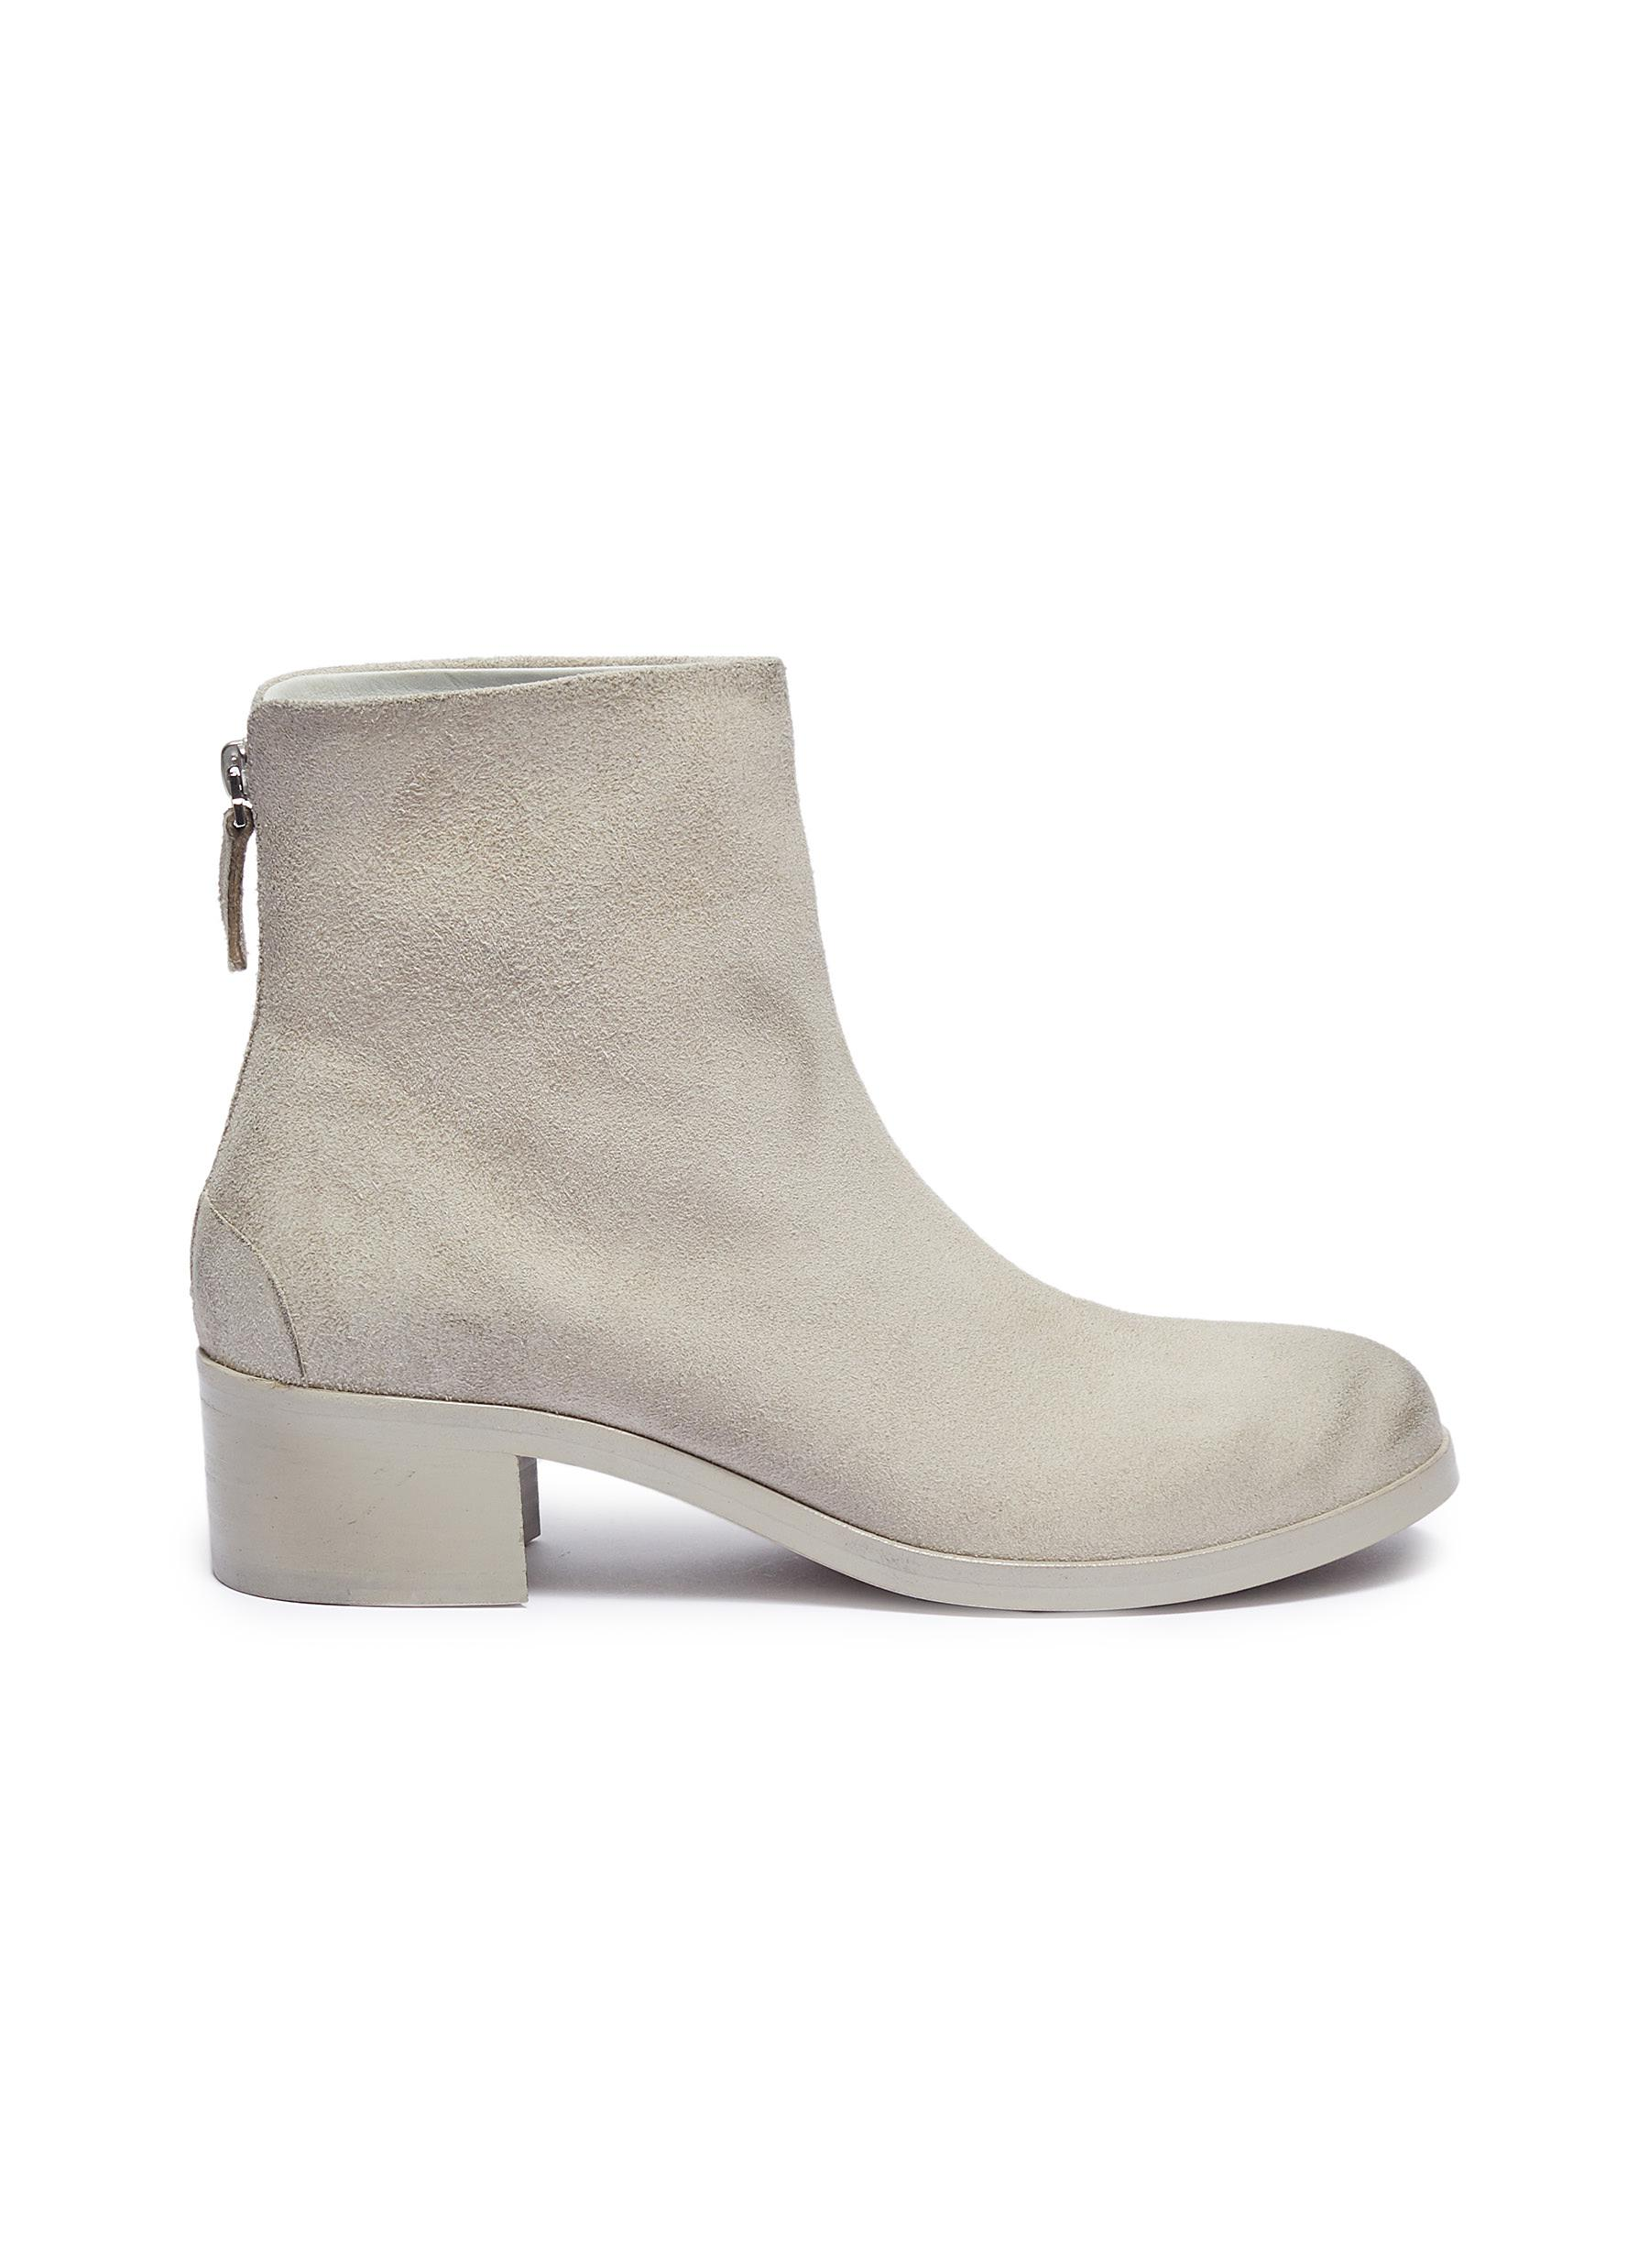 Tronch distressed leather ankle boots by Marsèll